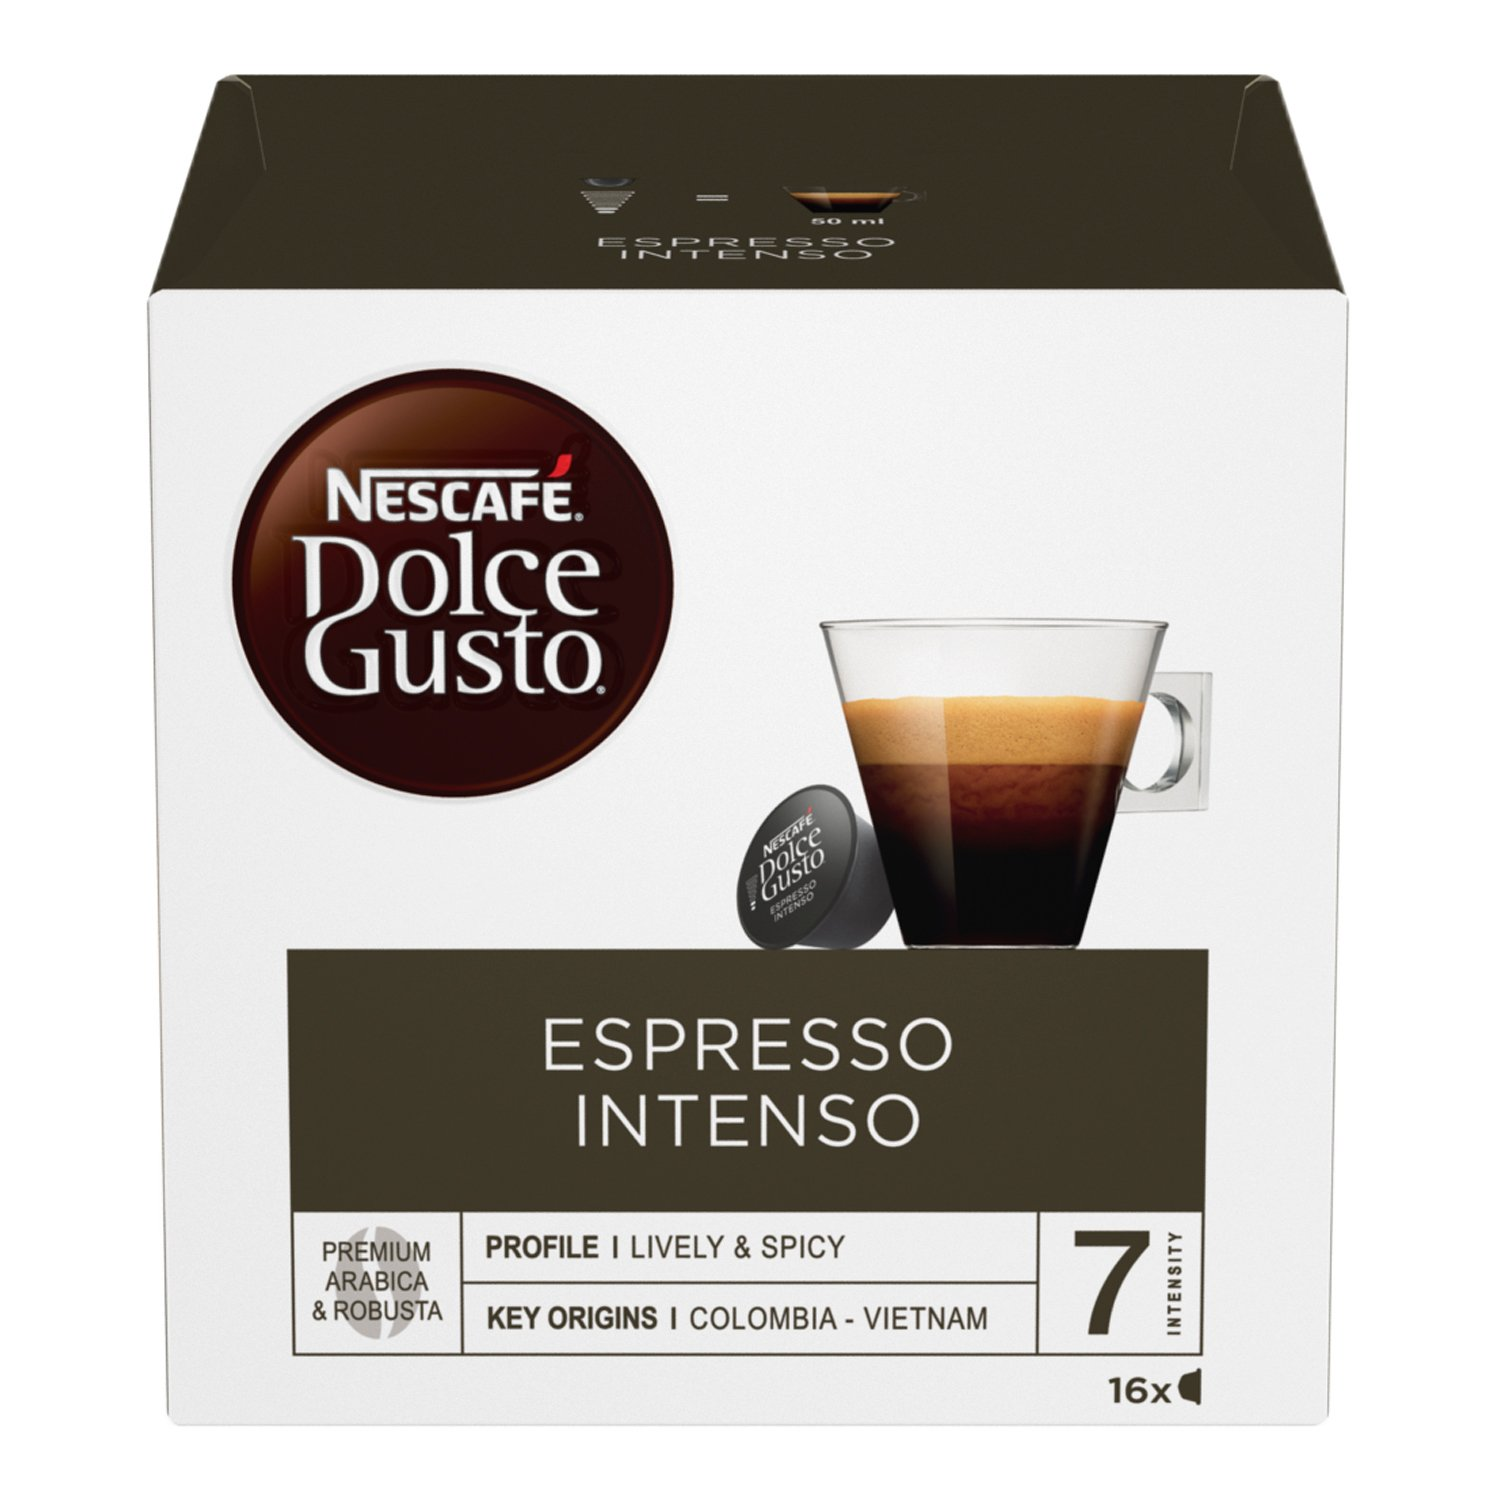 Nestle Dolce Gusto Coffee Espresso Intenso, 16 ct